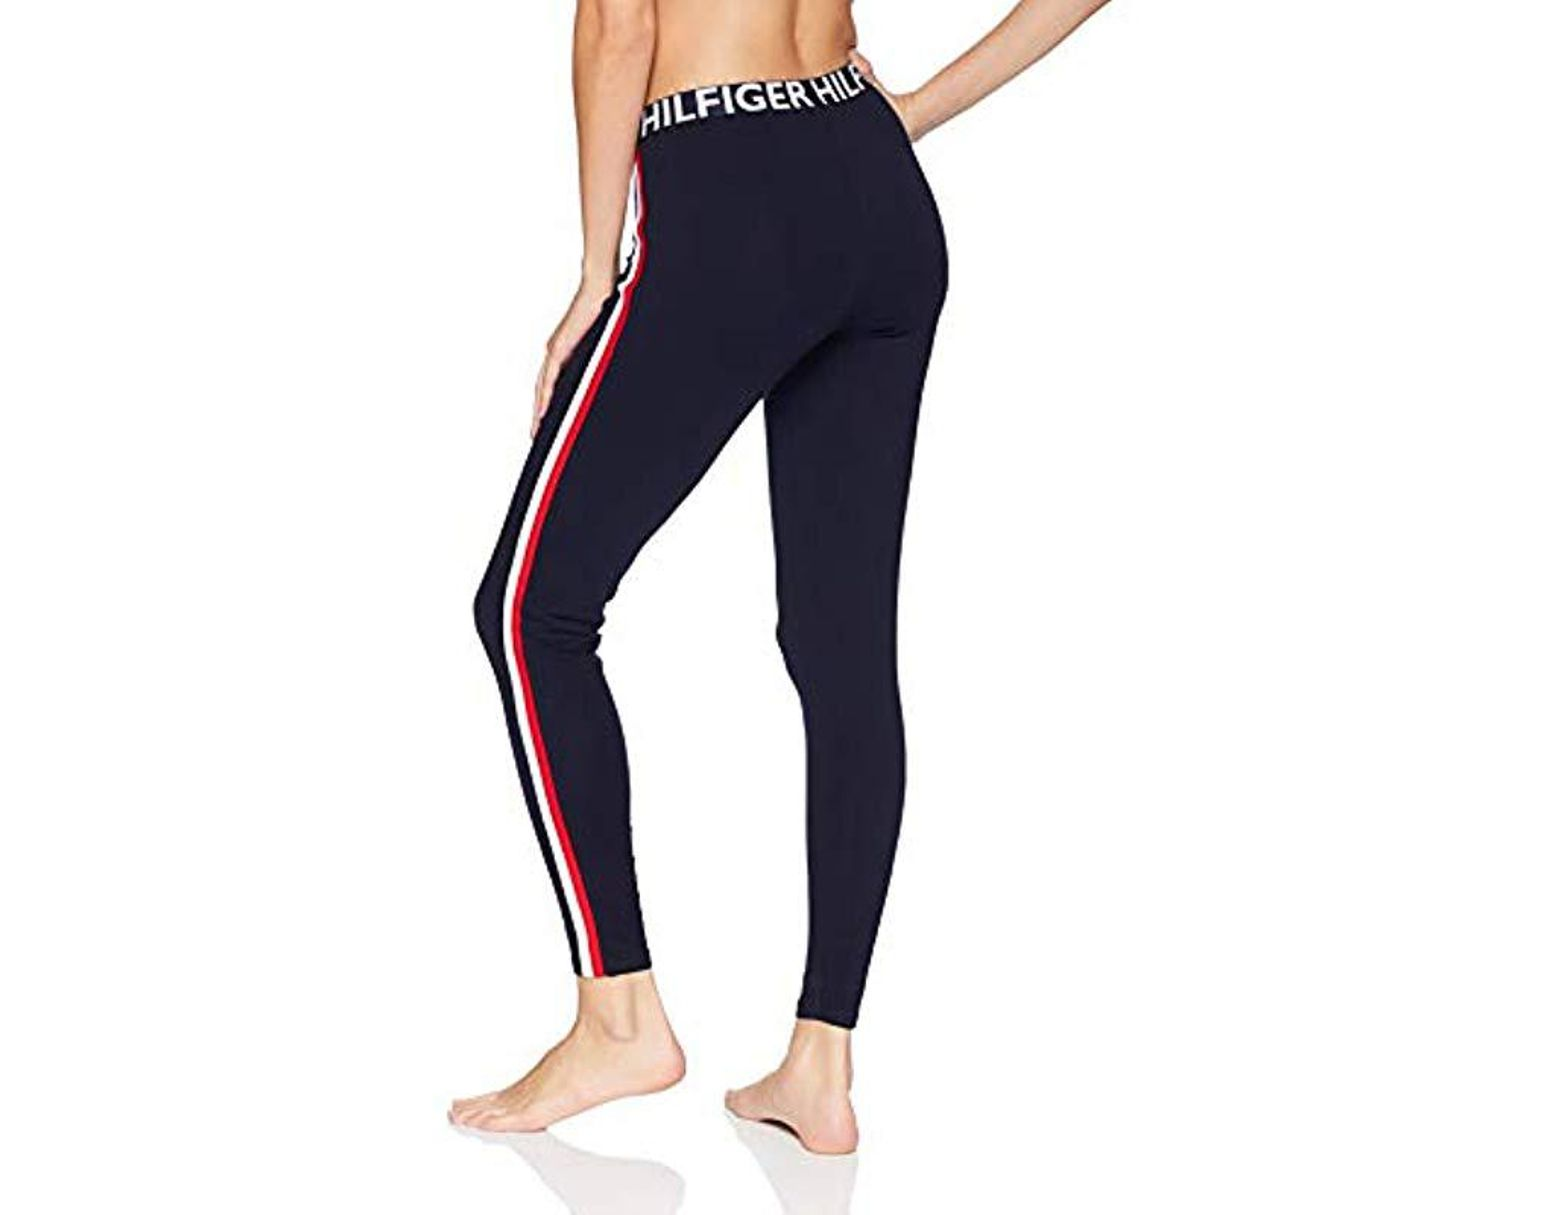 0be1338c07b0e7 Tommy Hilfiger Retro Style Hilfiger Logo Graphic Leggings Pant Lounge Pj in  Blue - Save 26% - Lyst